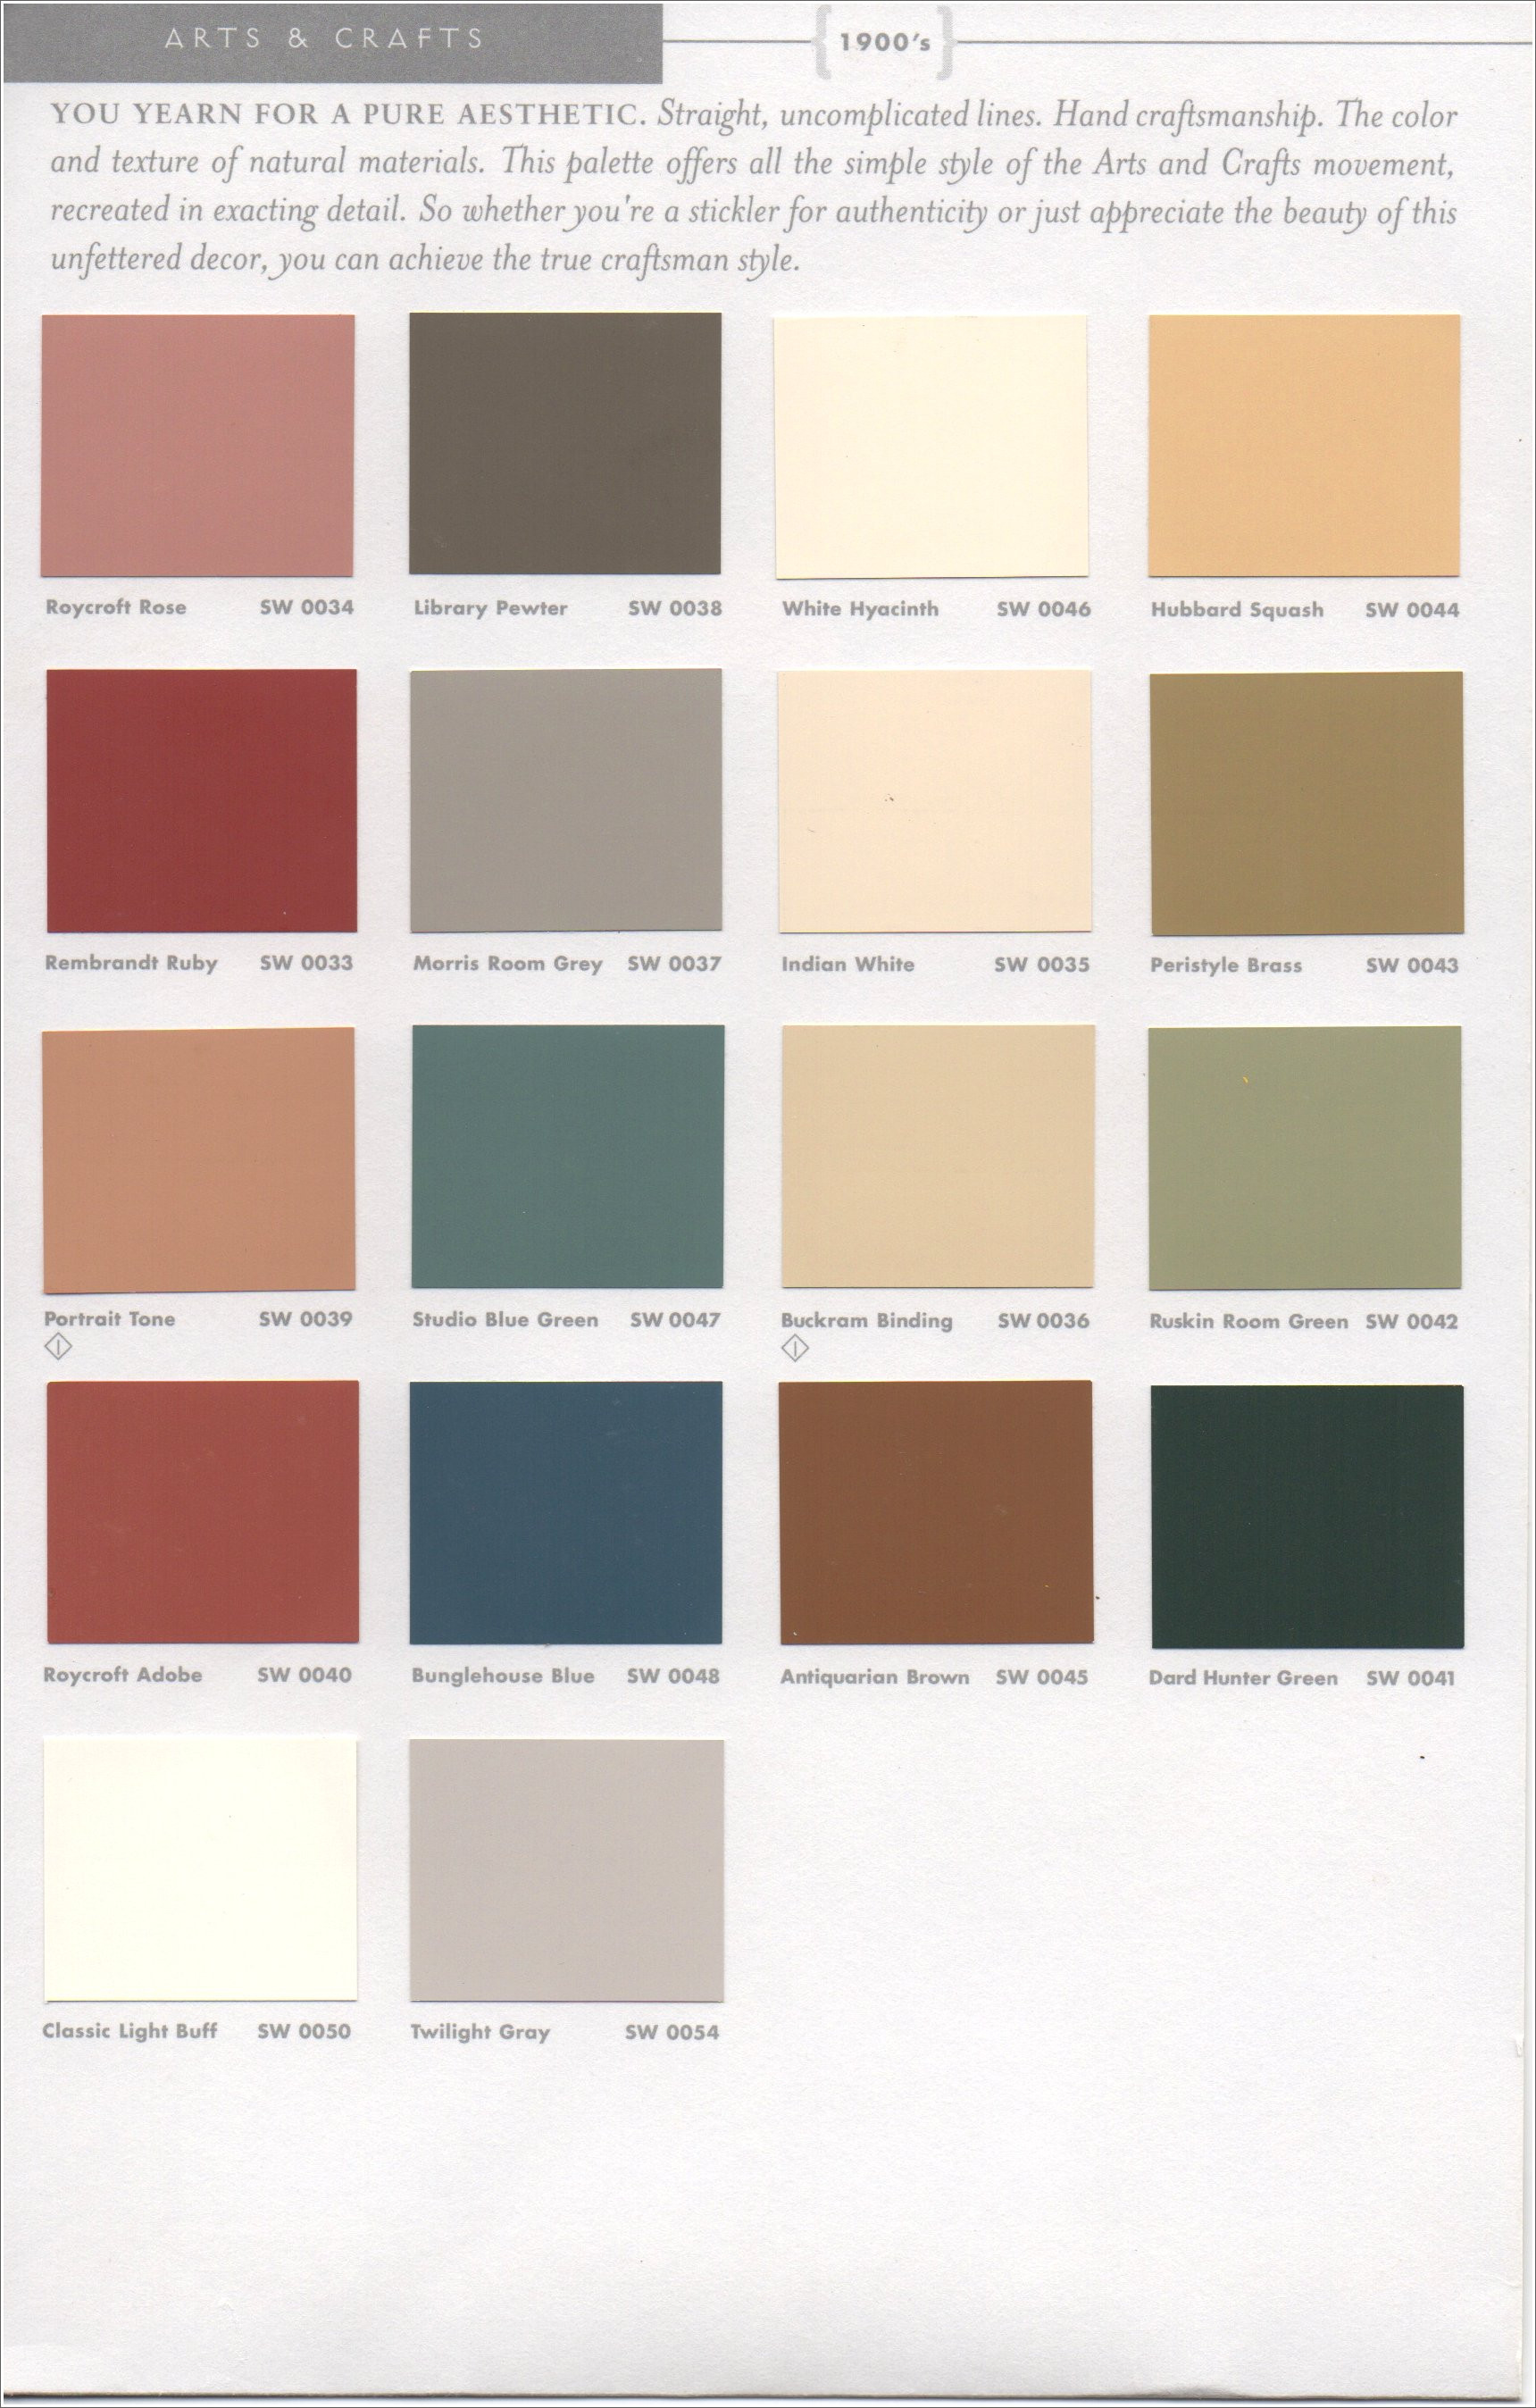 Historic paint colors pt 1 como bungalow Paint colors interior